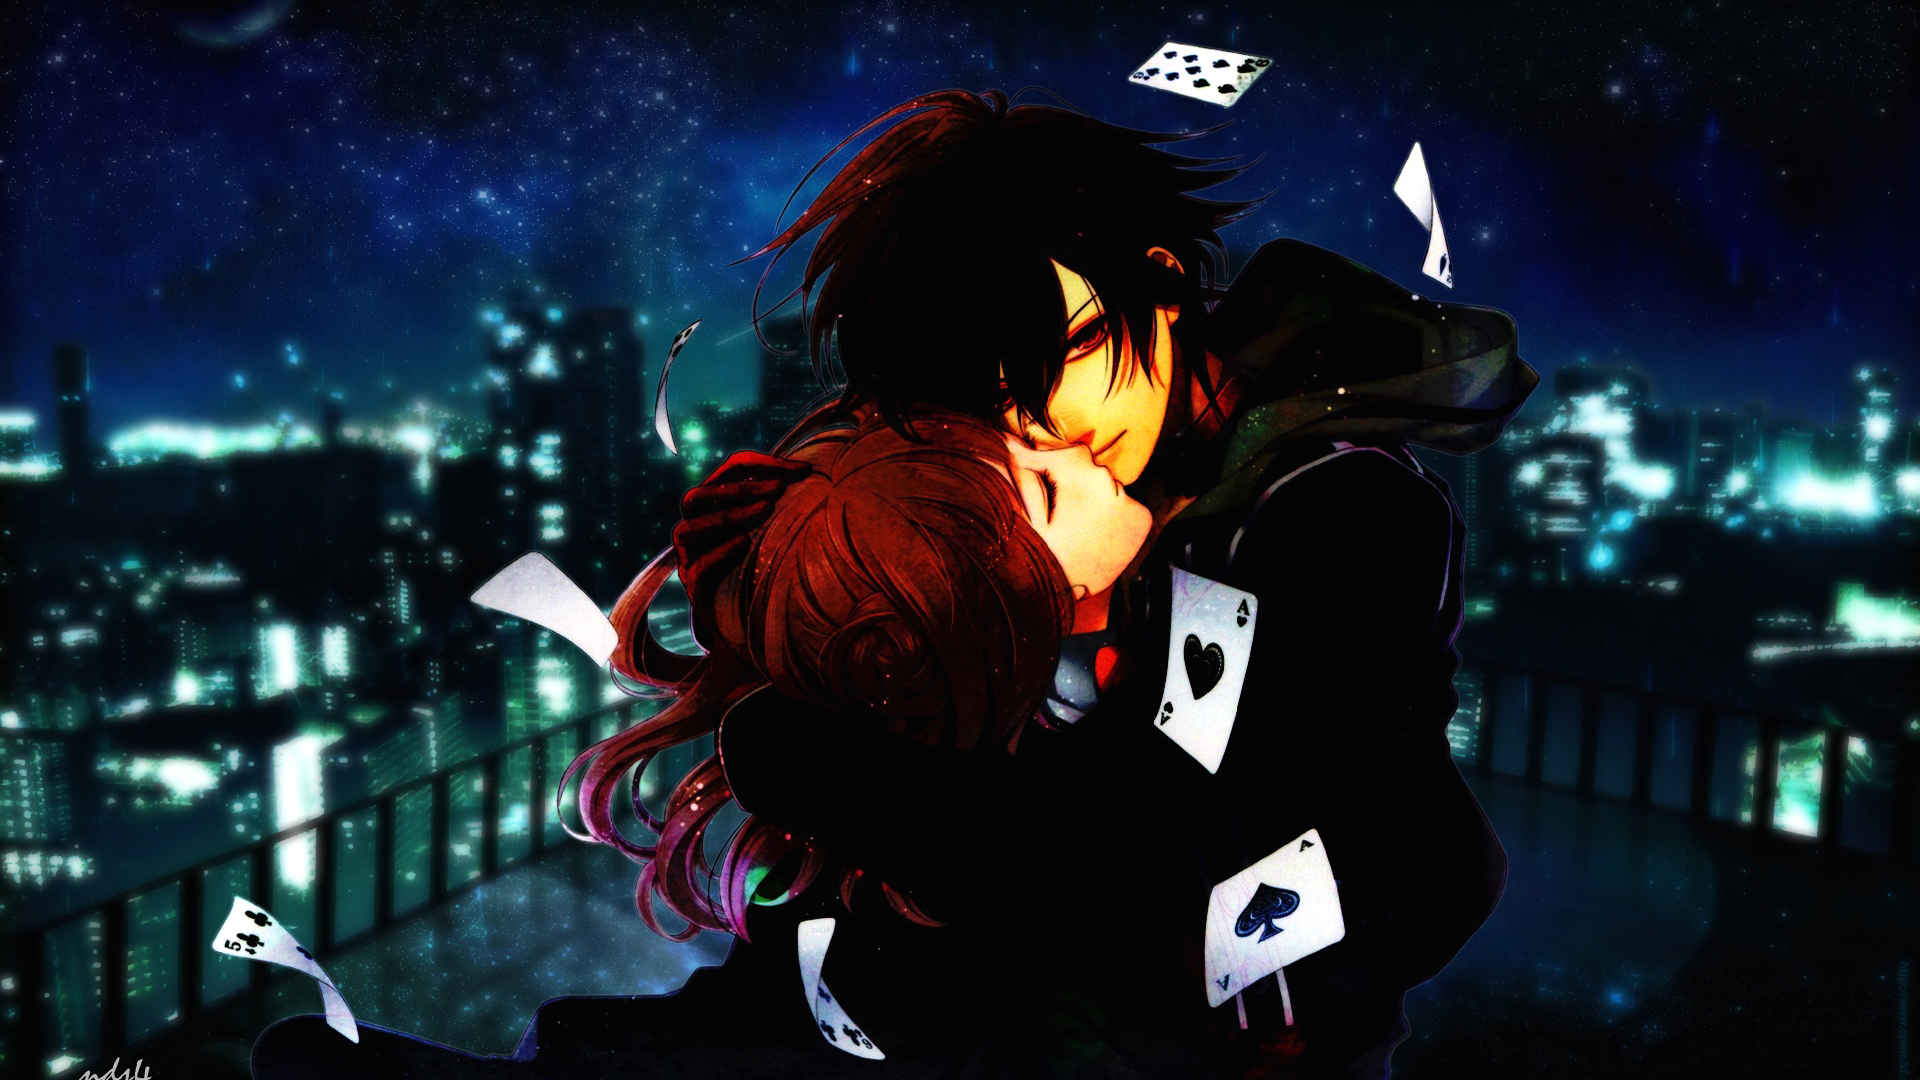 cool-anime-wallpaper-images